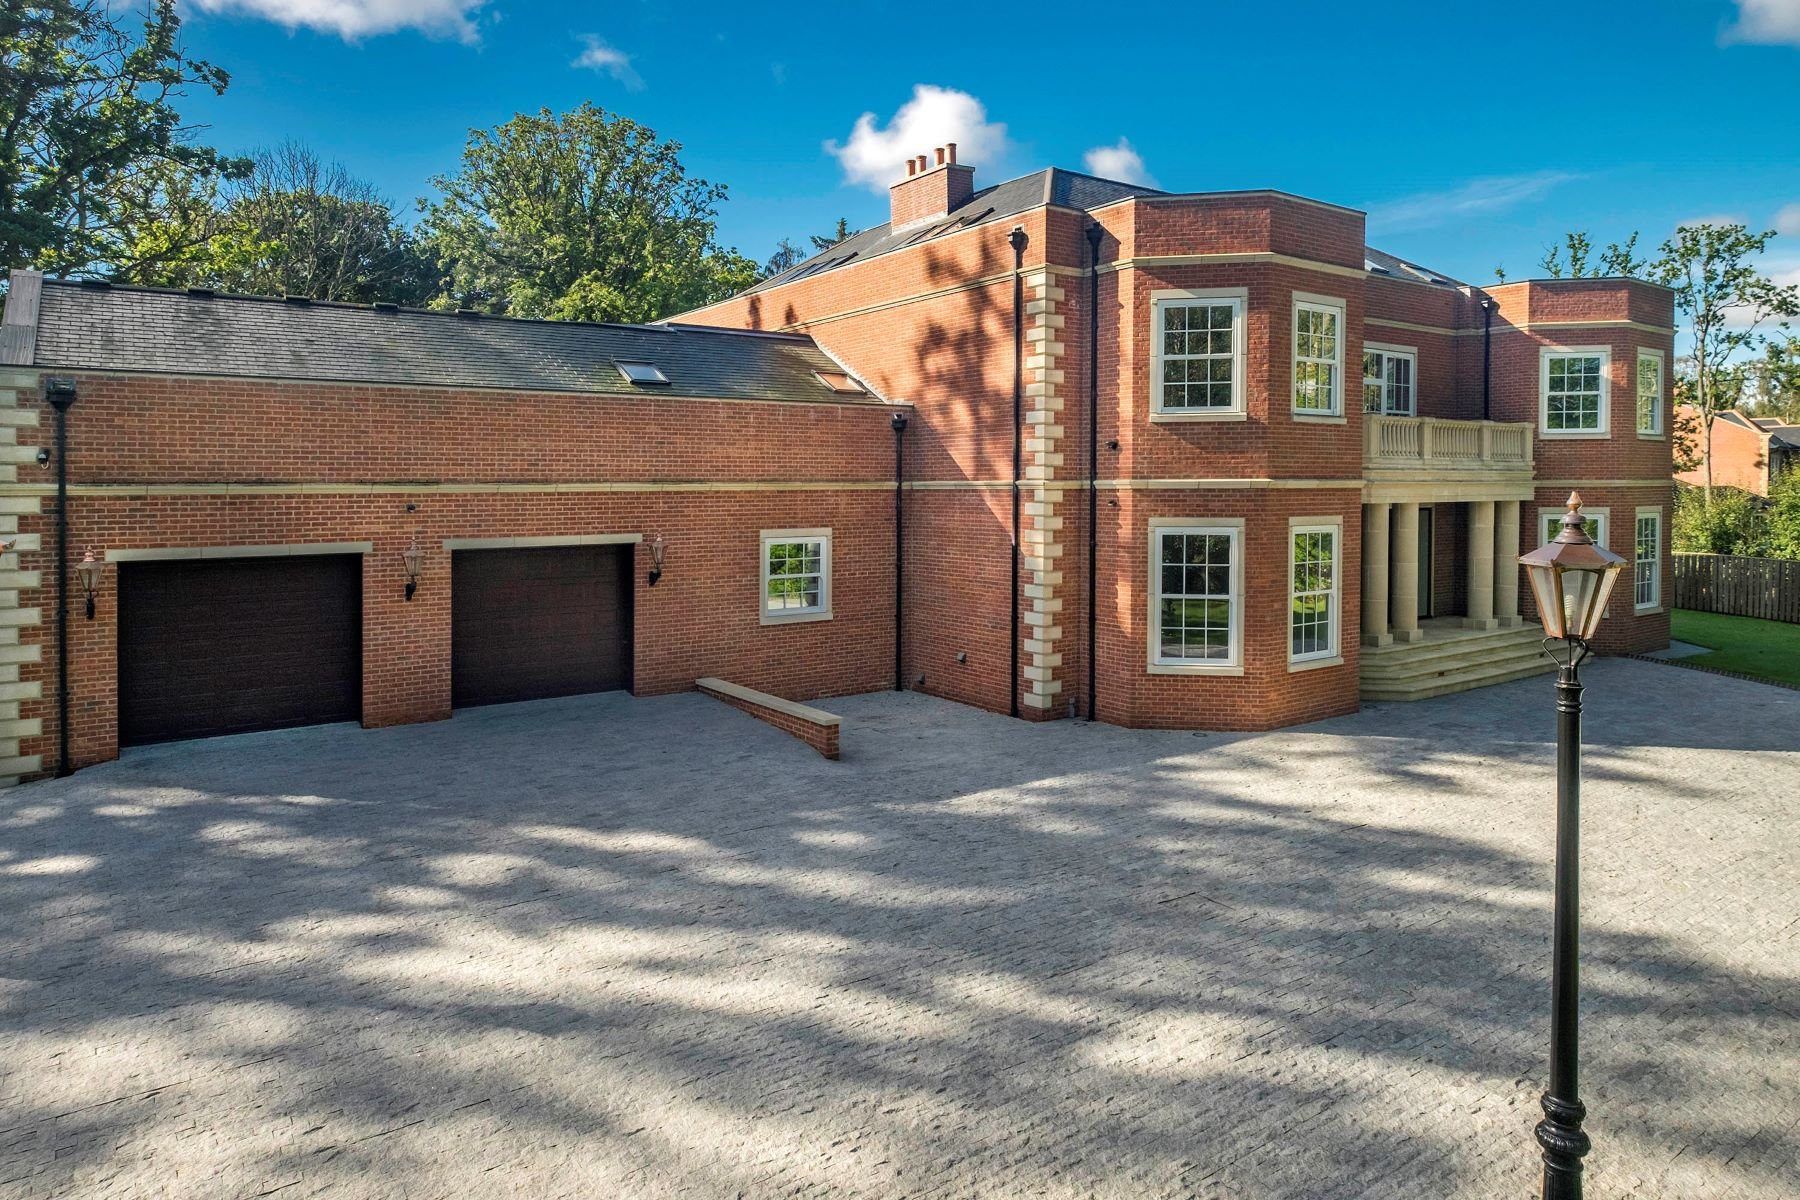 Single Family Homes for Sale at The Birches, Tranwell Woods Morpeth, England NE61 6AG United Kingdom